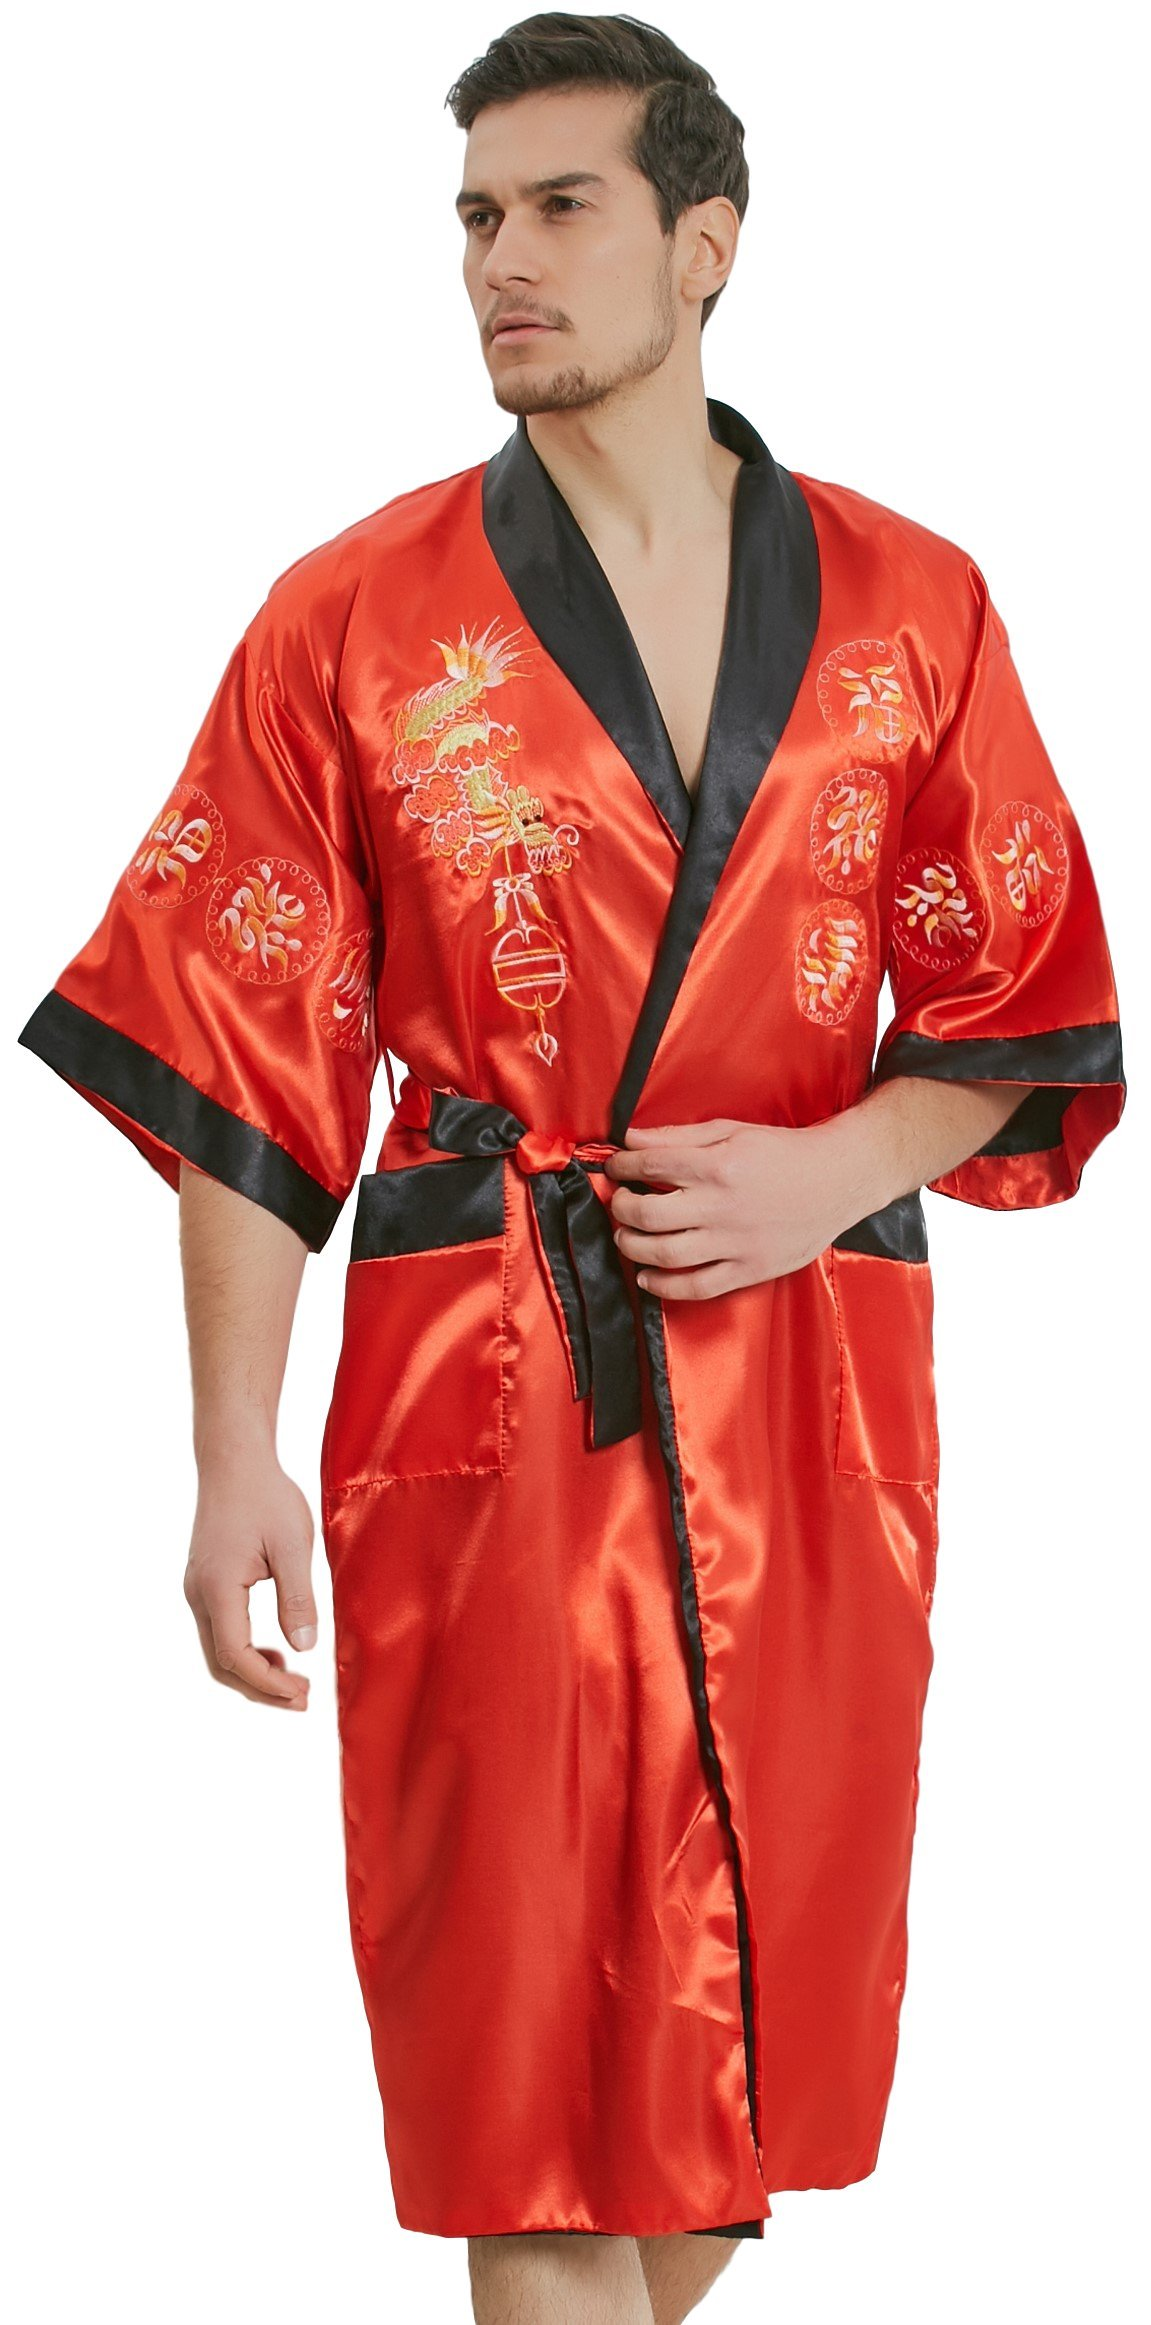 samurai JP Men s Kimono Robe Style Satin Relaxation Bathrobe (Dragon  Series Night Gown) with Towel (Red Fire Dragon) 938d30af8